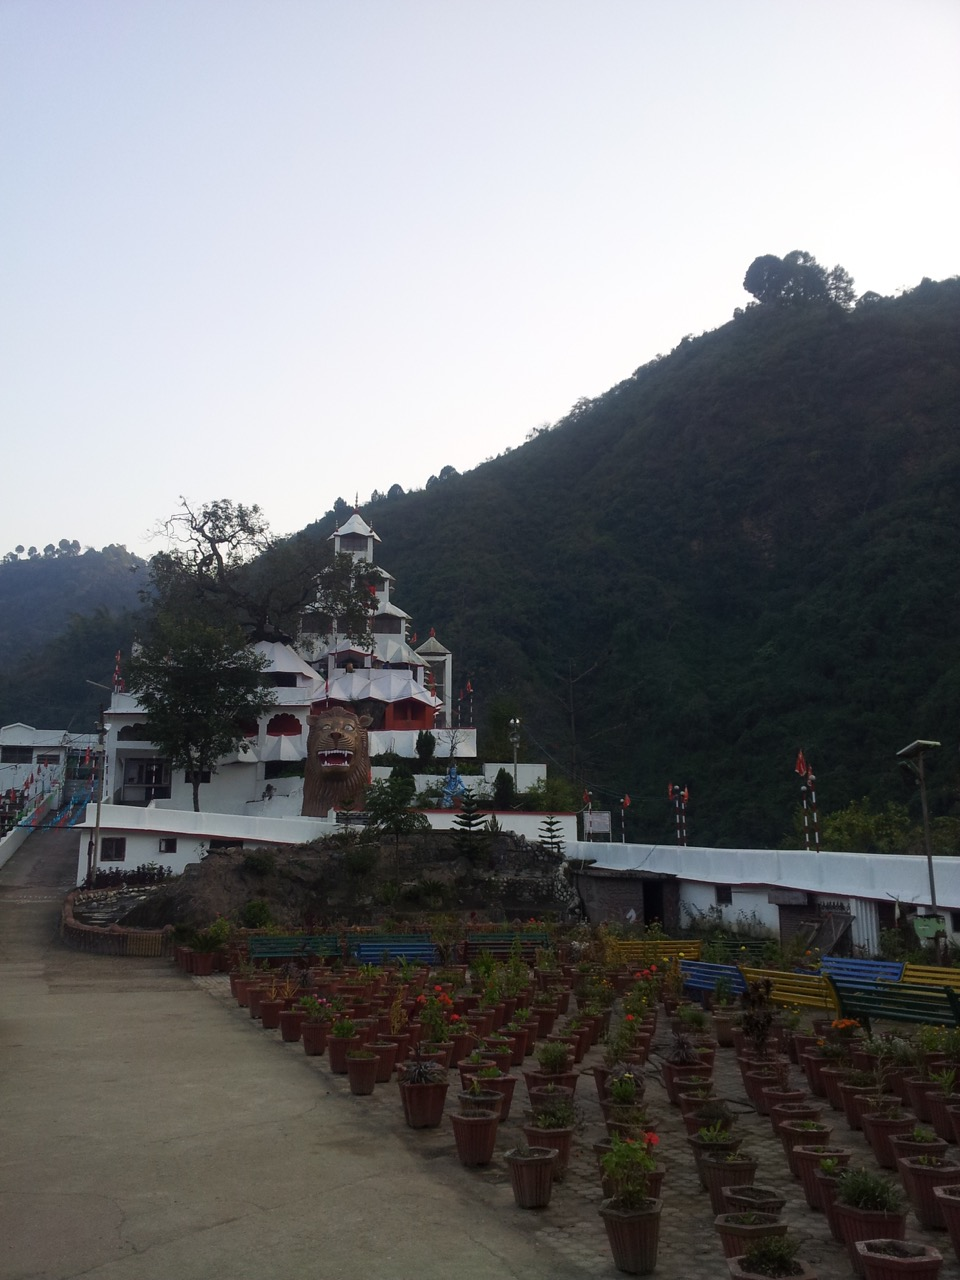 The Bhimakali temple is situated right beside the bridge that connects Mandi and Kullu.